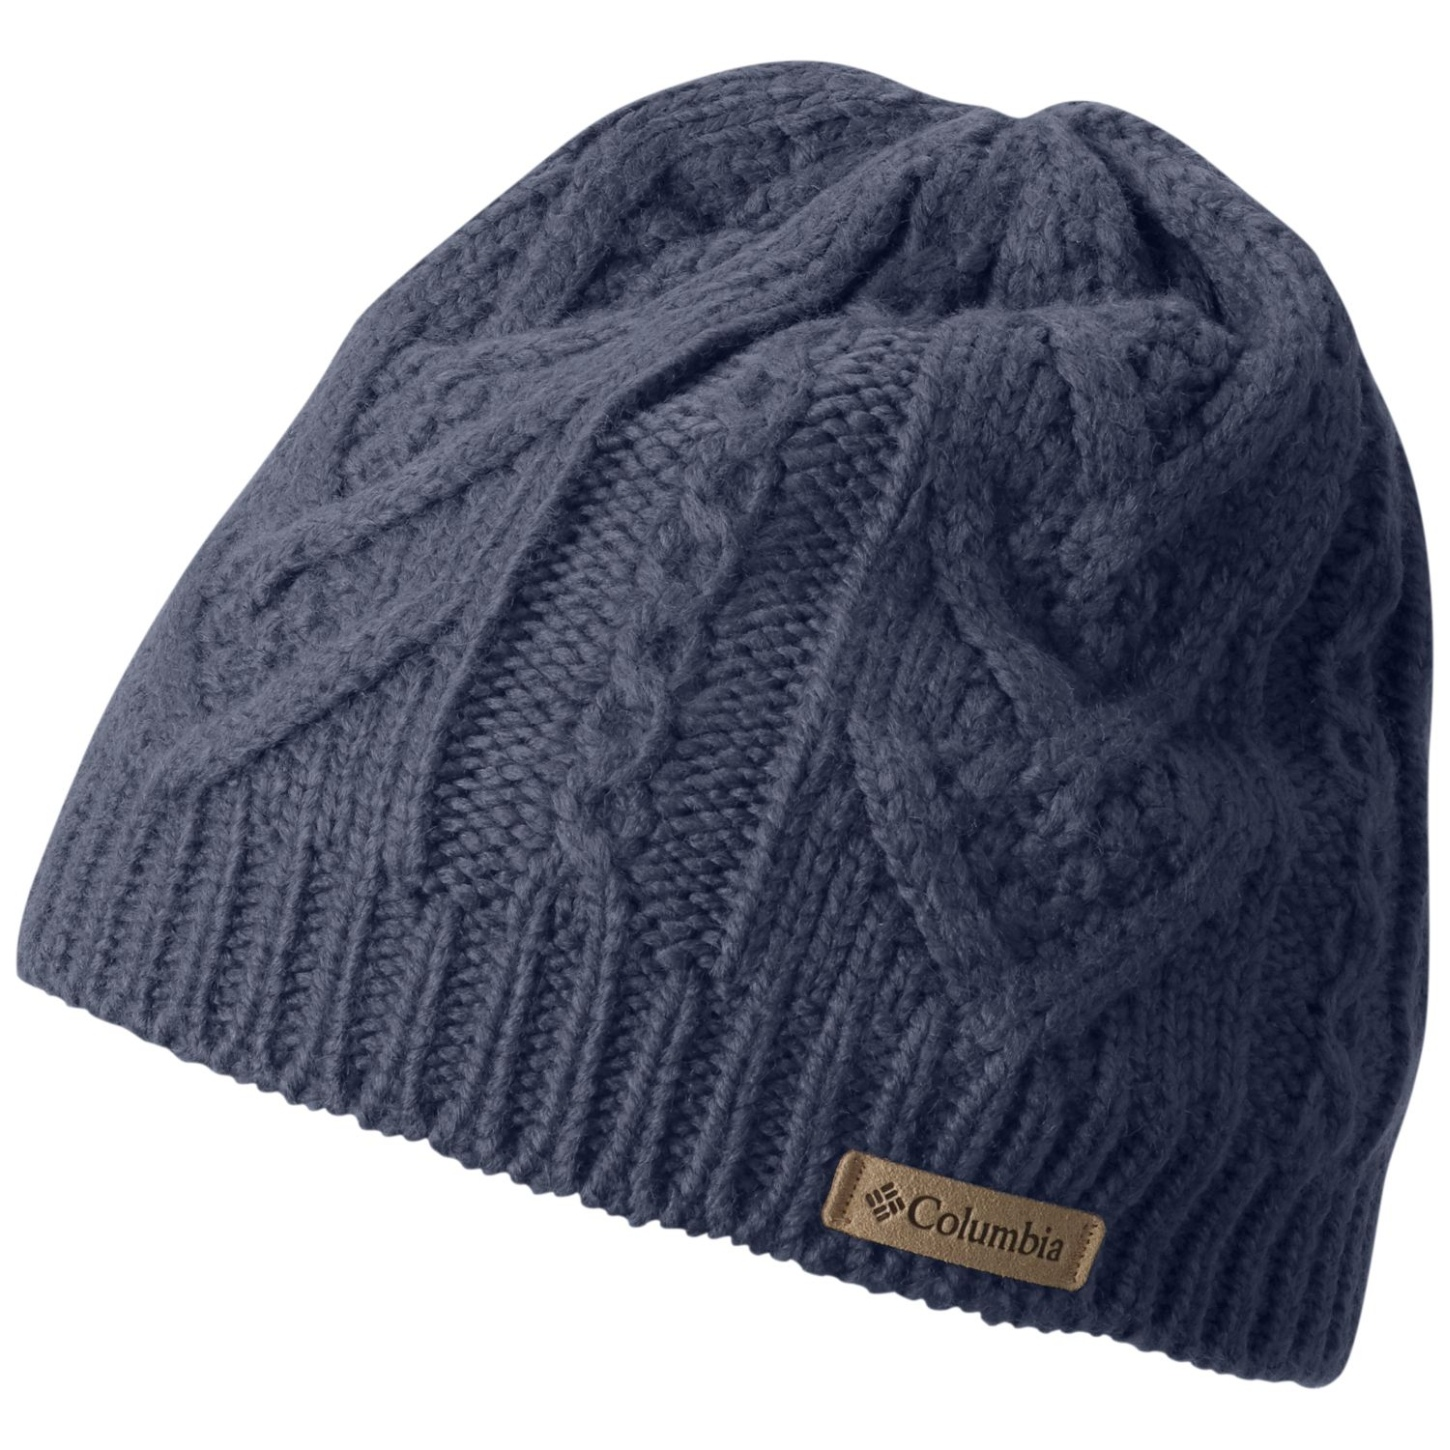 Columbia Parallel Peak II Beanie Nocturnal-30